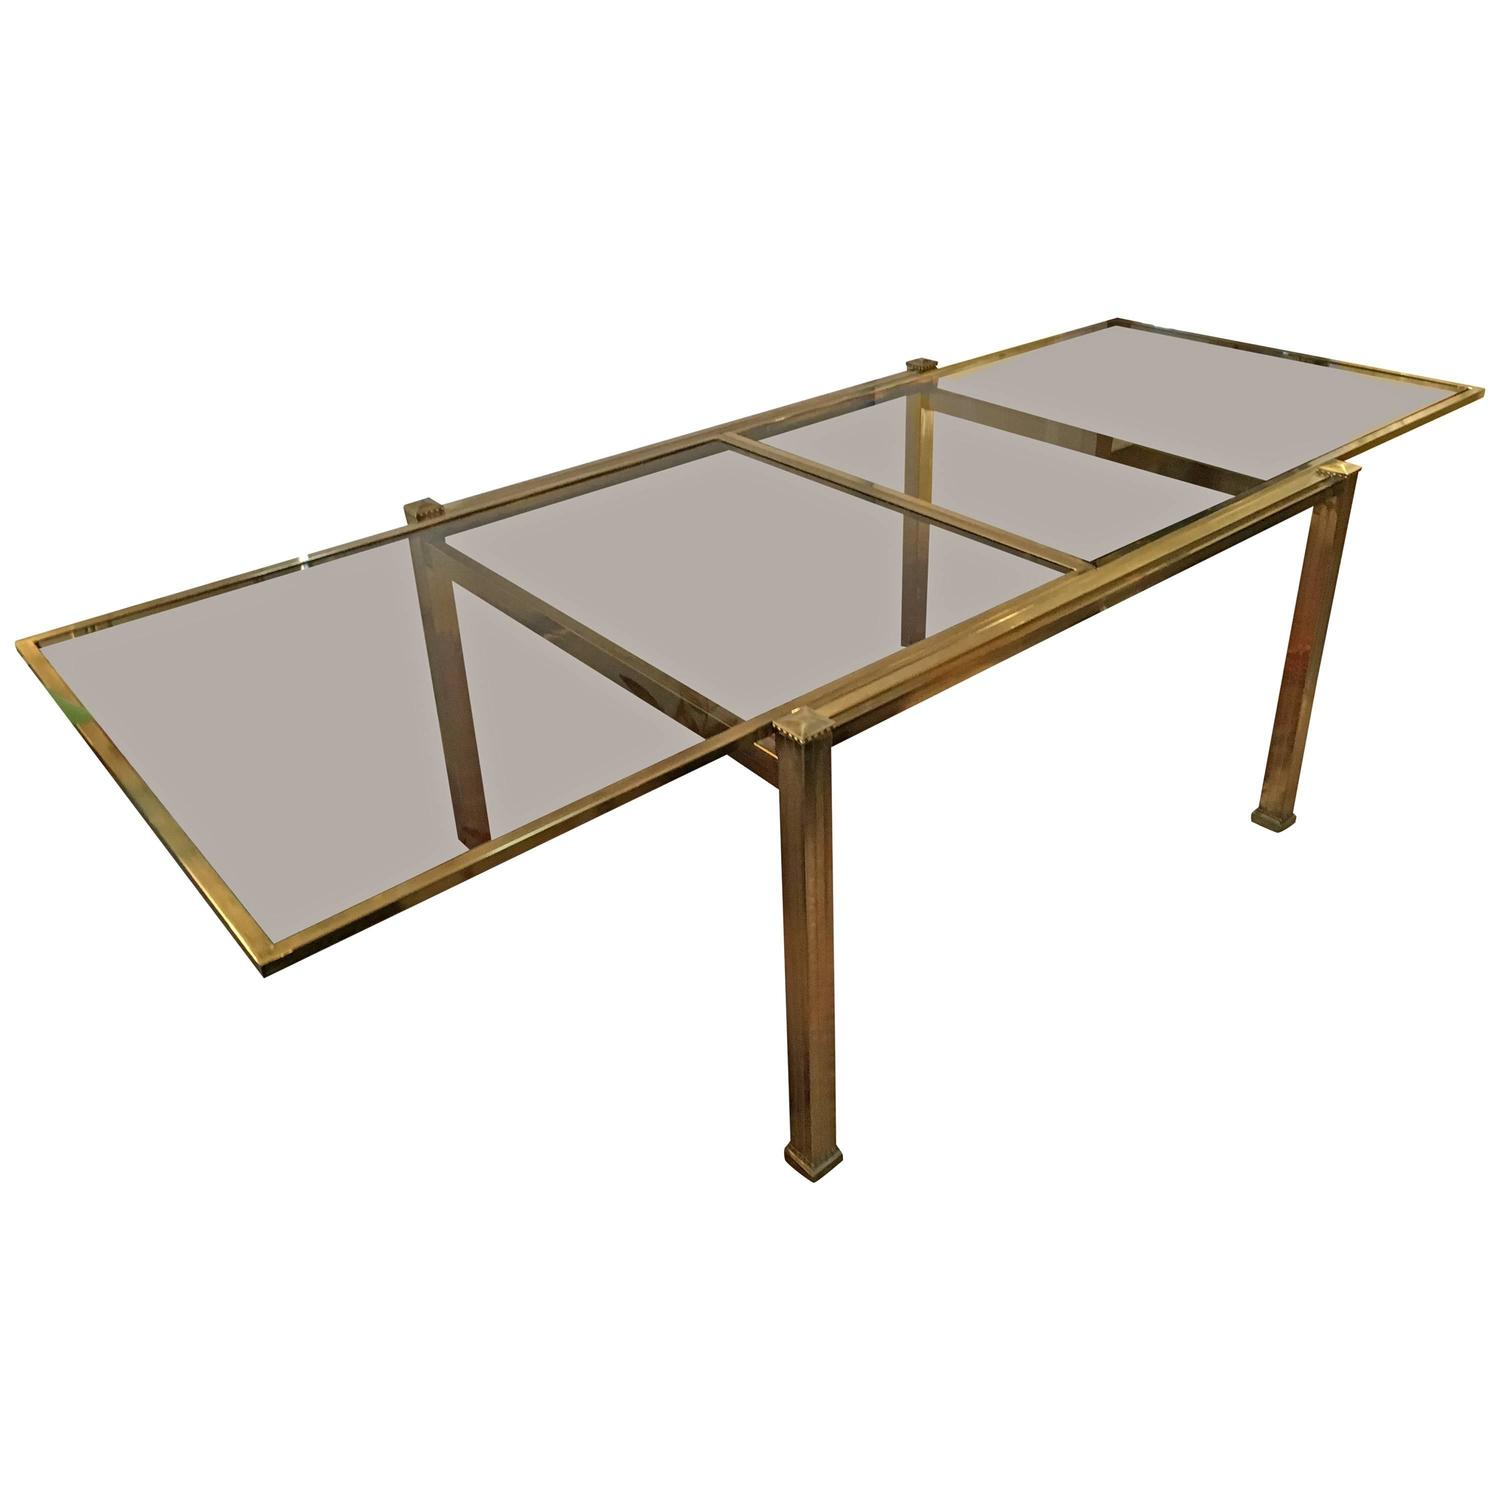 Mastercraft brass and smoked glass extension dining table at 1stdibs - Extension tables dining room furniture ...